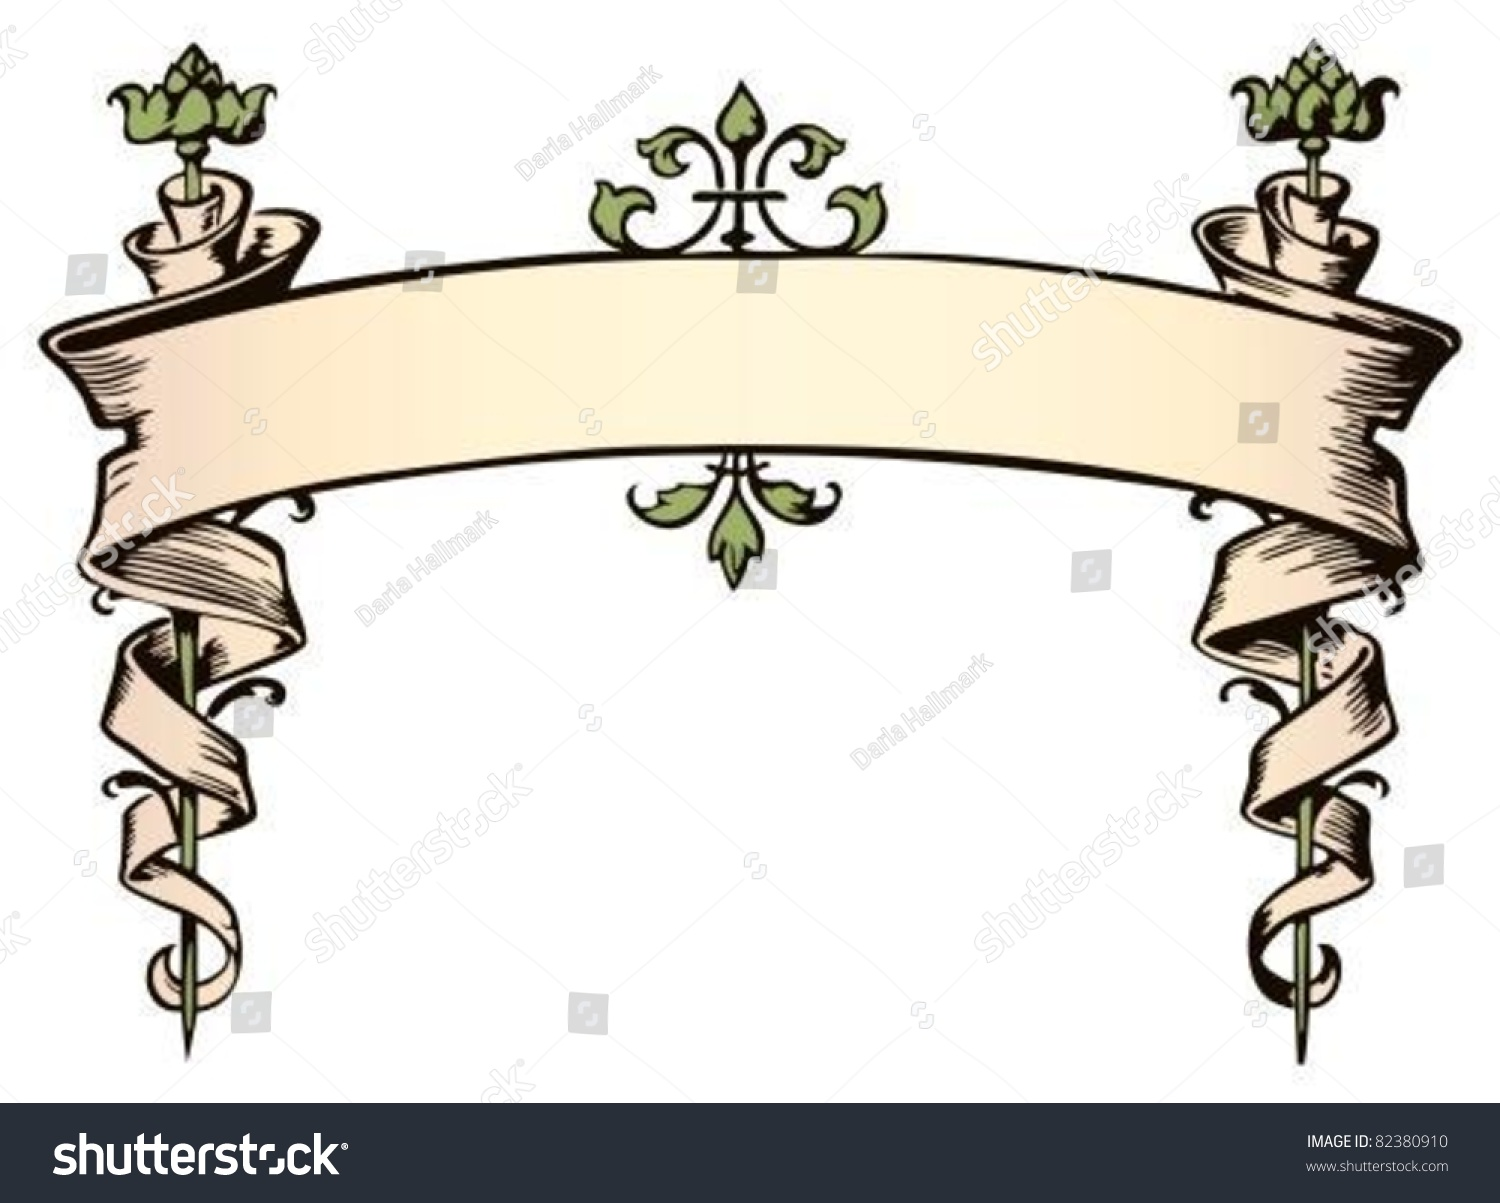 Fussy Victorian Style Banner Stock Vector 82380910 - Shutterstock